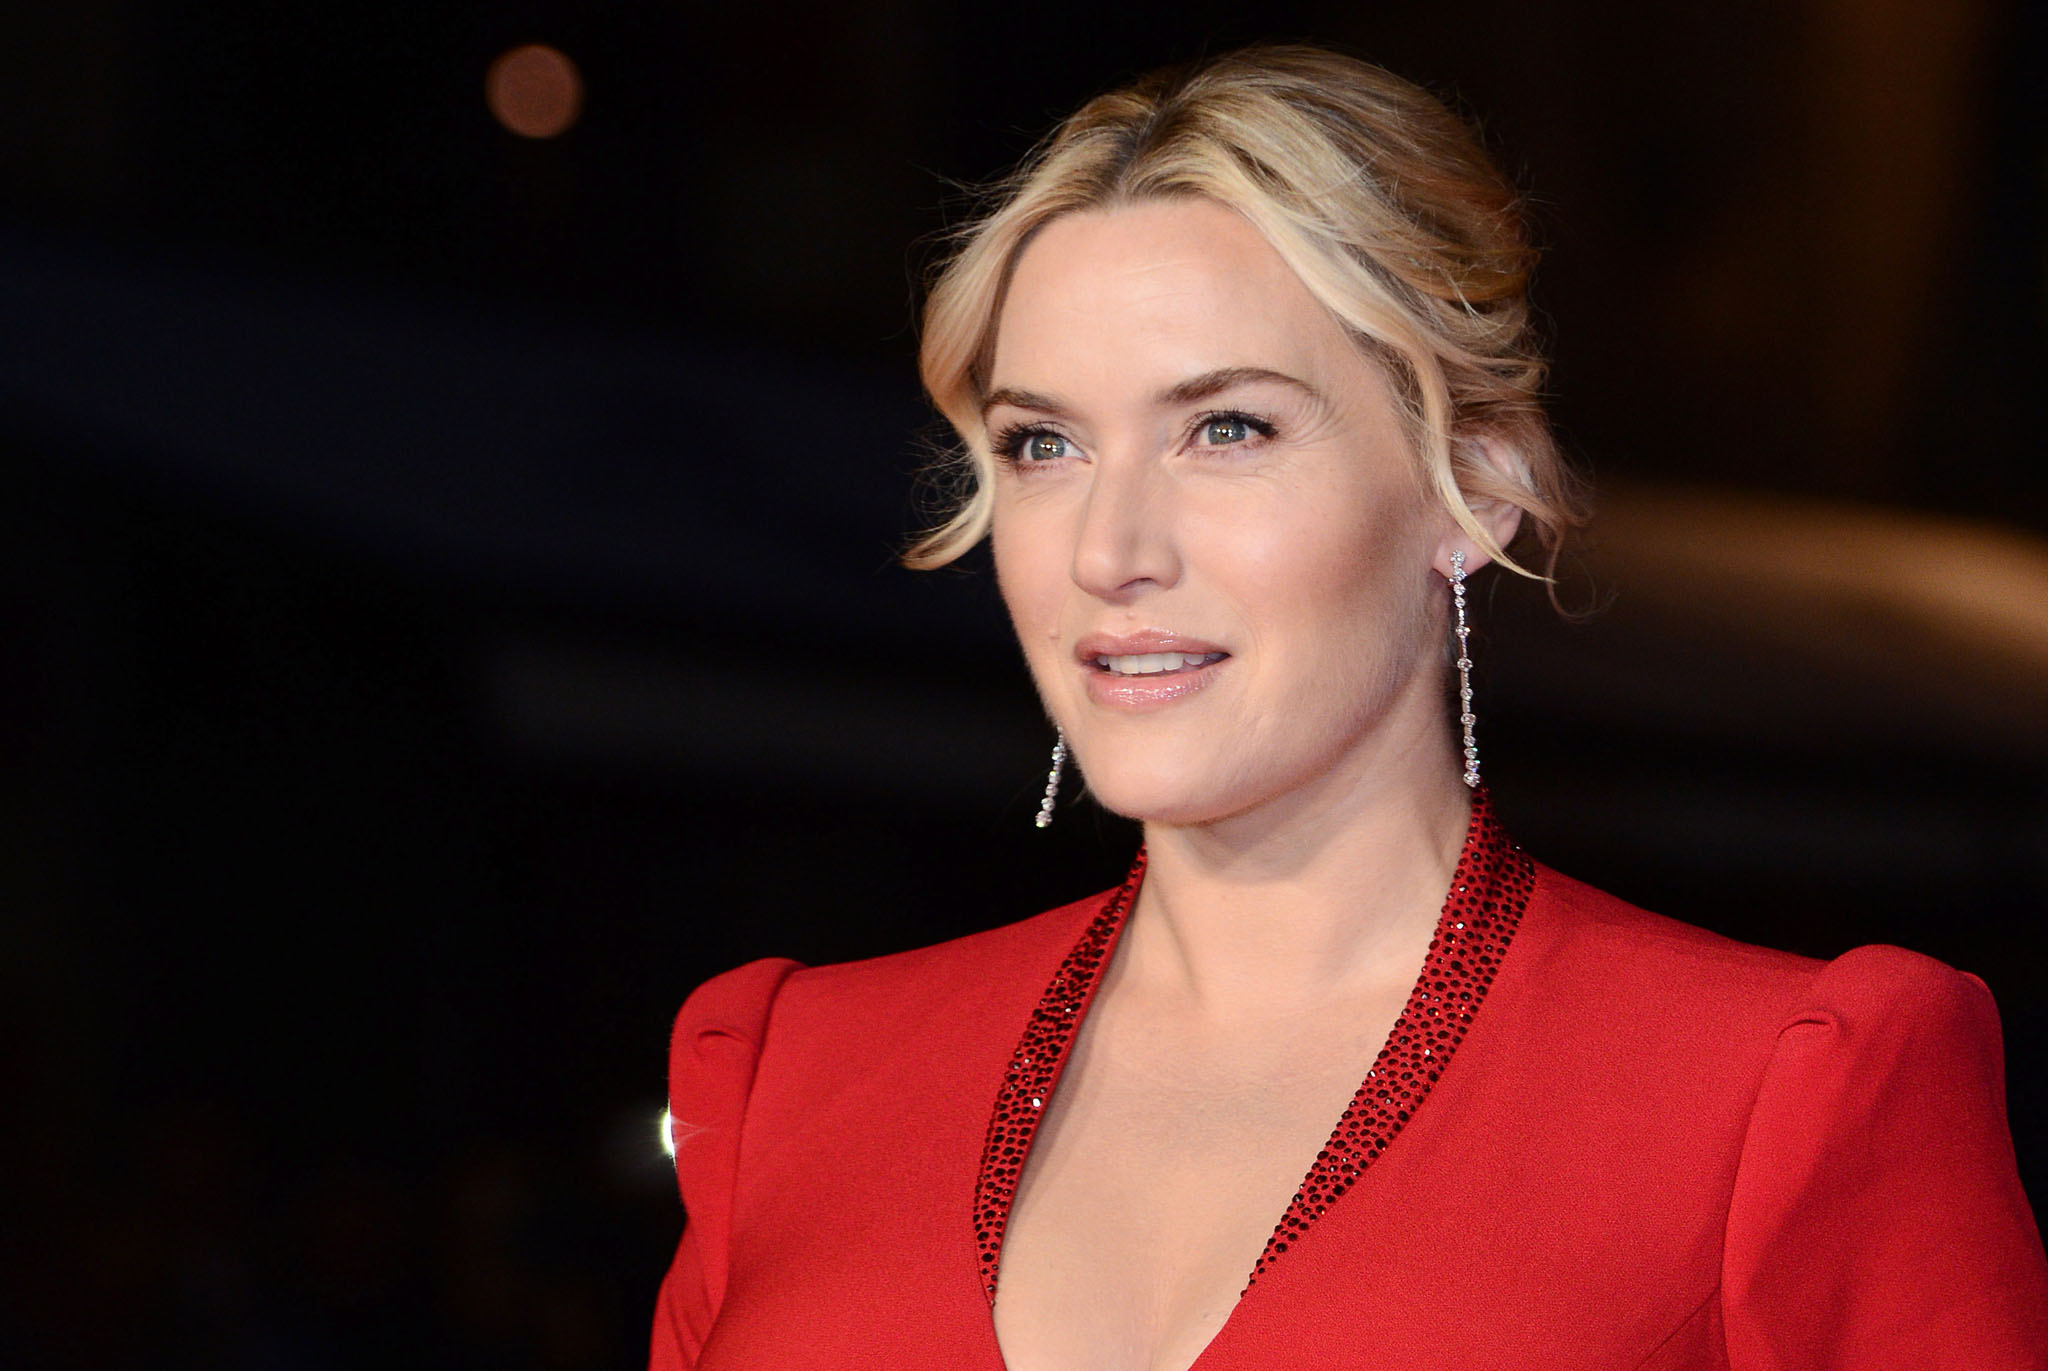 Kate winslet actress pictures